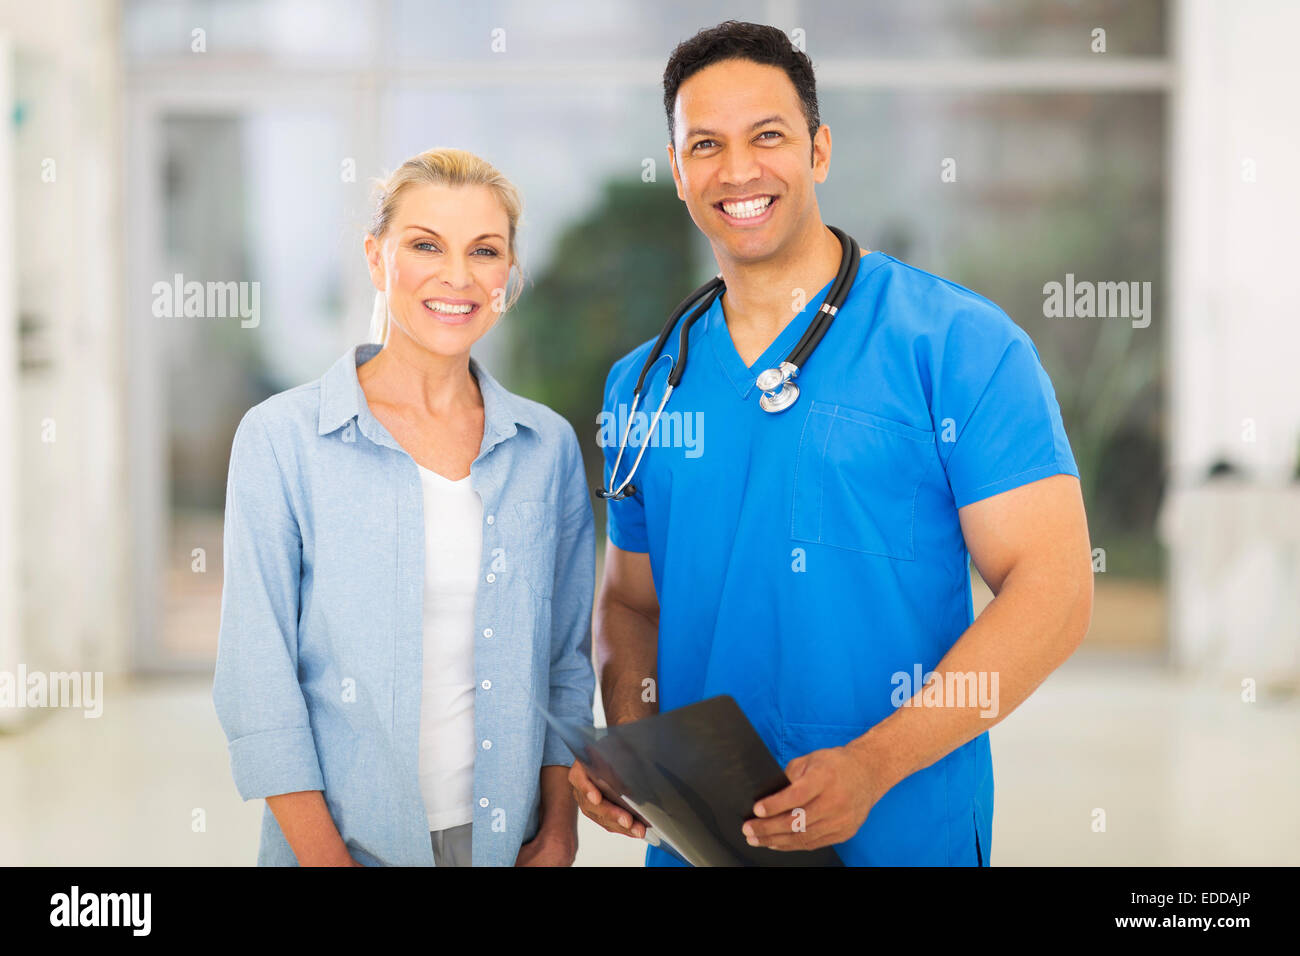 portrait of friendly medical doctor standing with senior patient - Stock Image